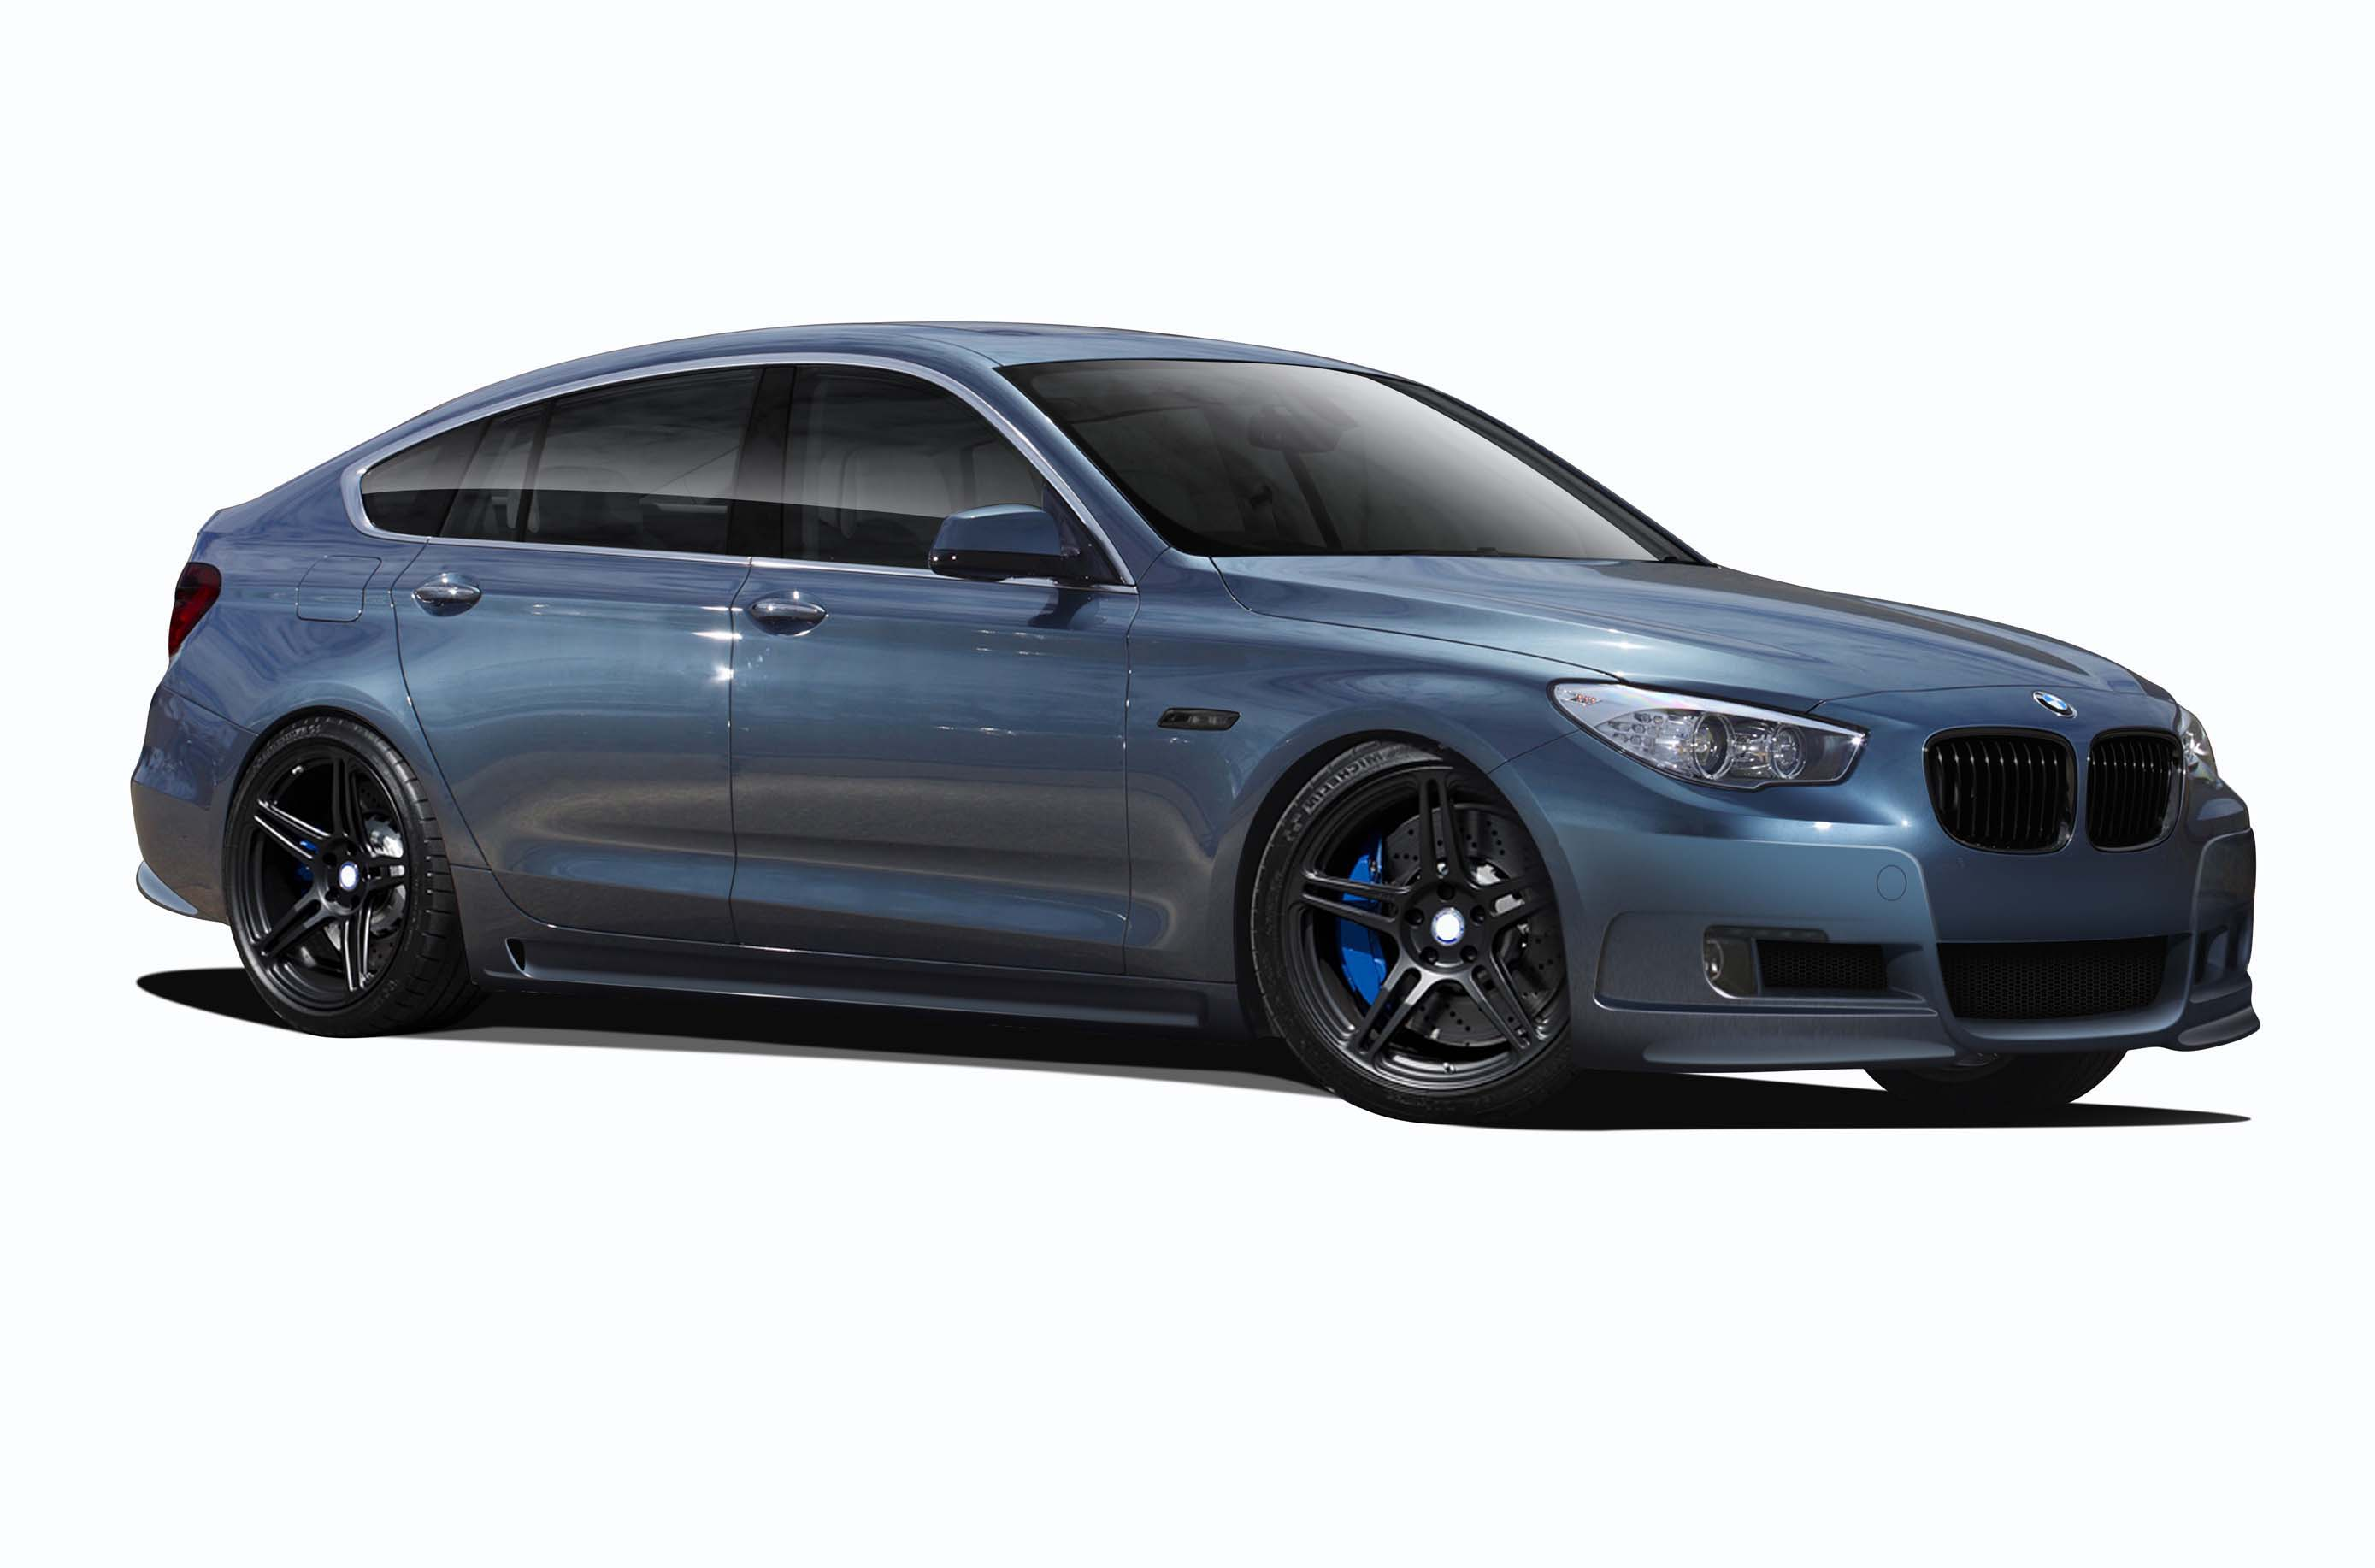 2016 bmw 5 series all fiberglass body kit bodykit bmw. Black Bedroom Furniture Sets. Home Design Ideas